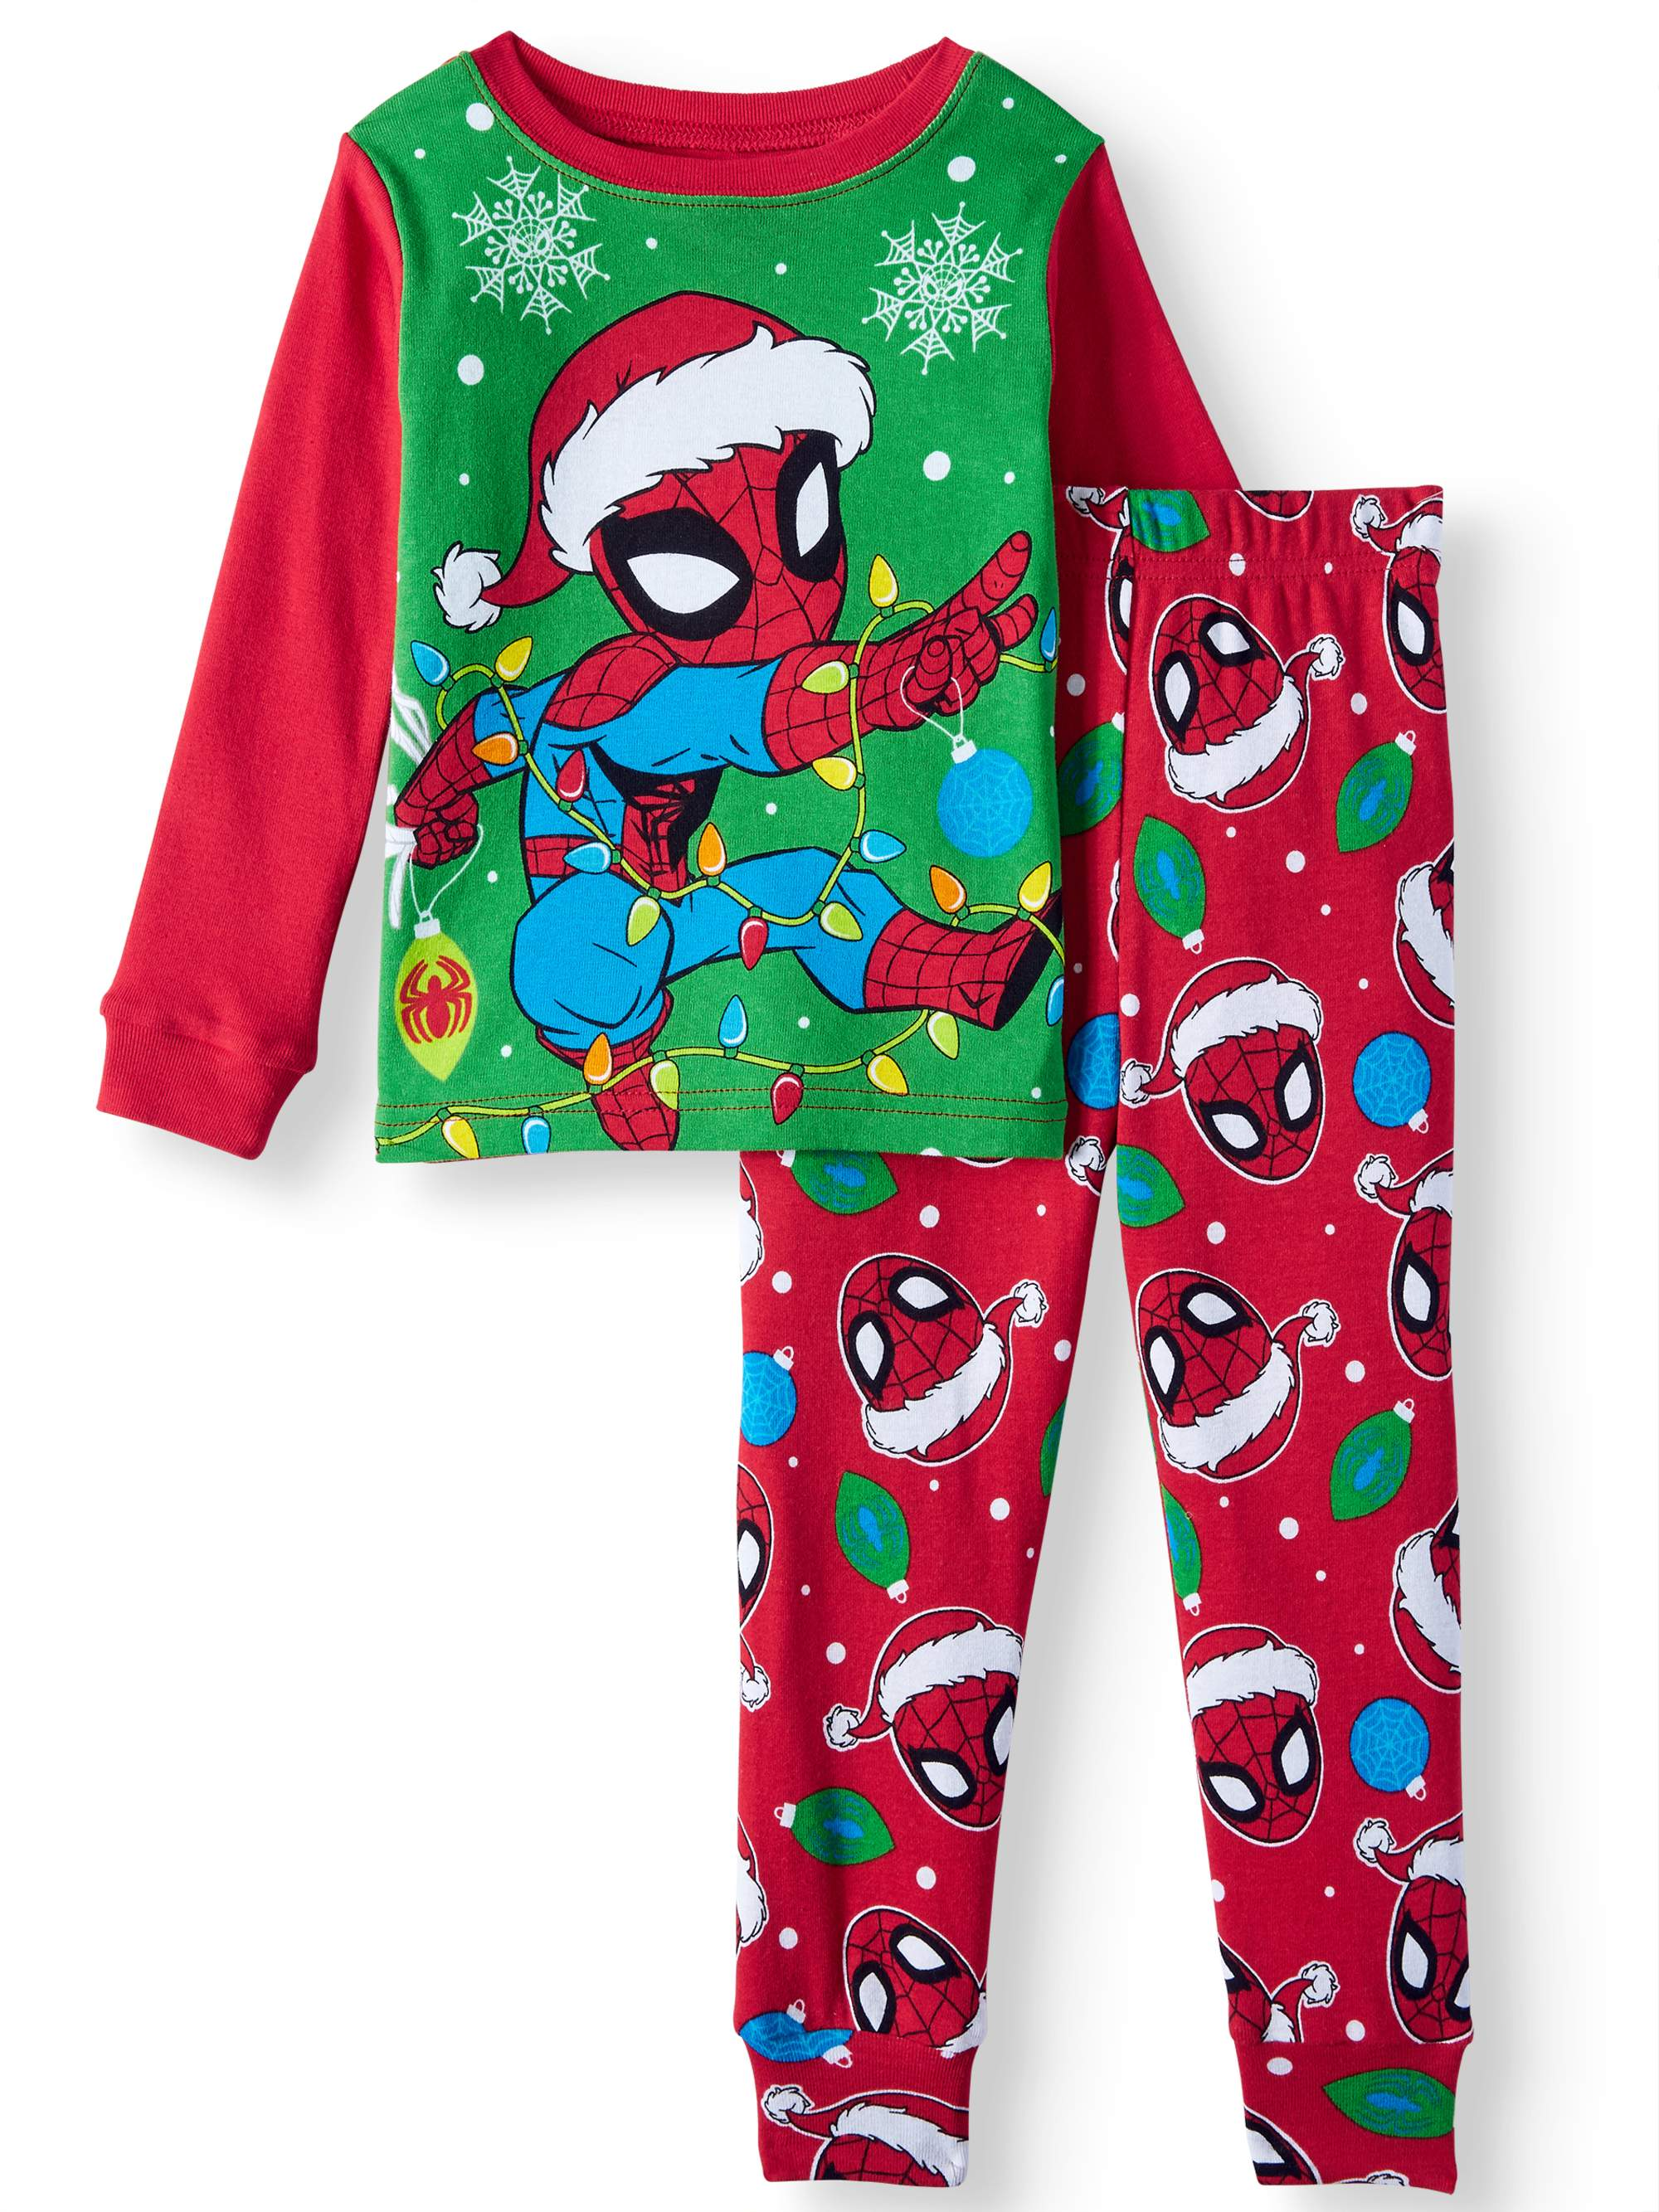 21a6a66c3089 Christmas Long Sleeve Tight Fit Pajamas